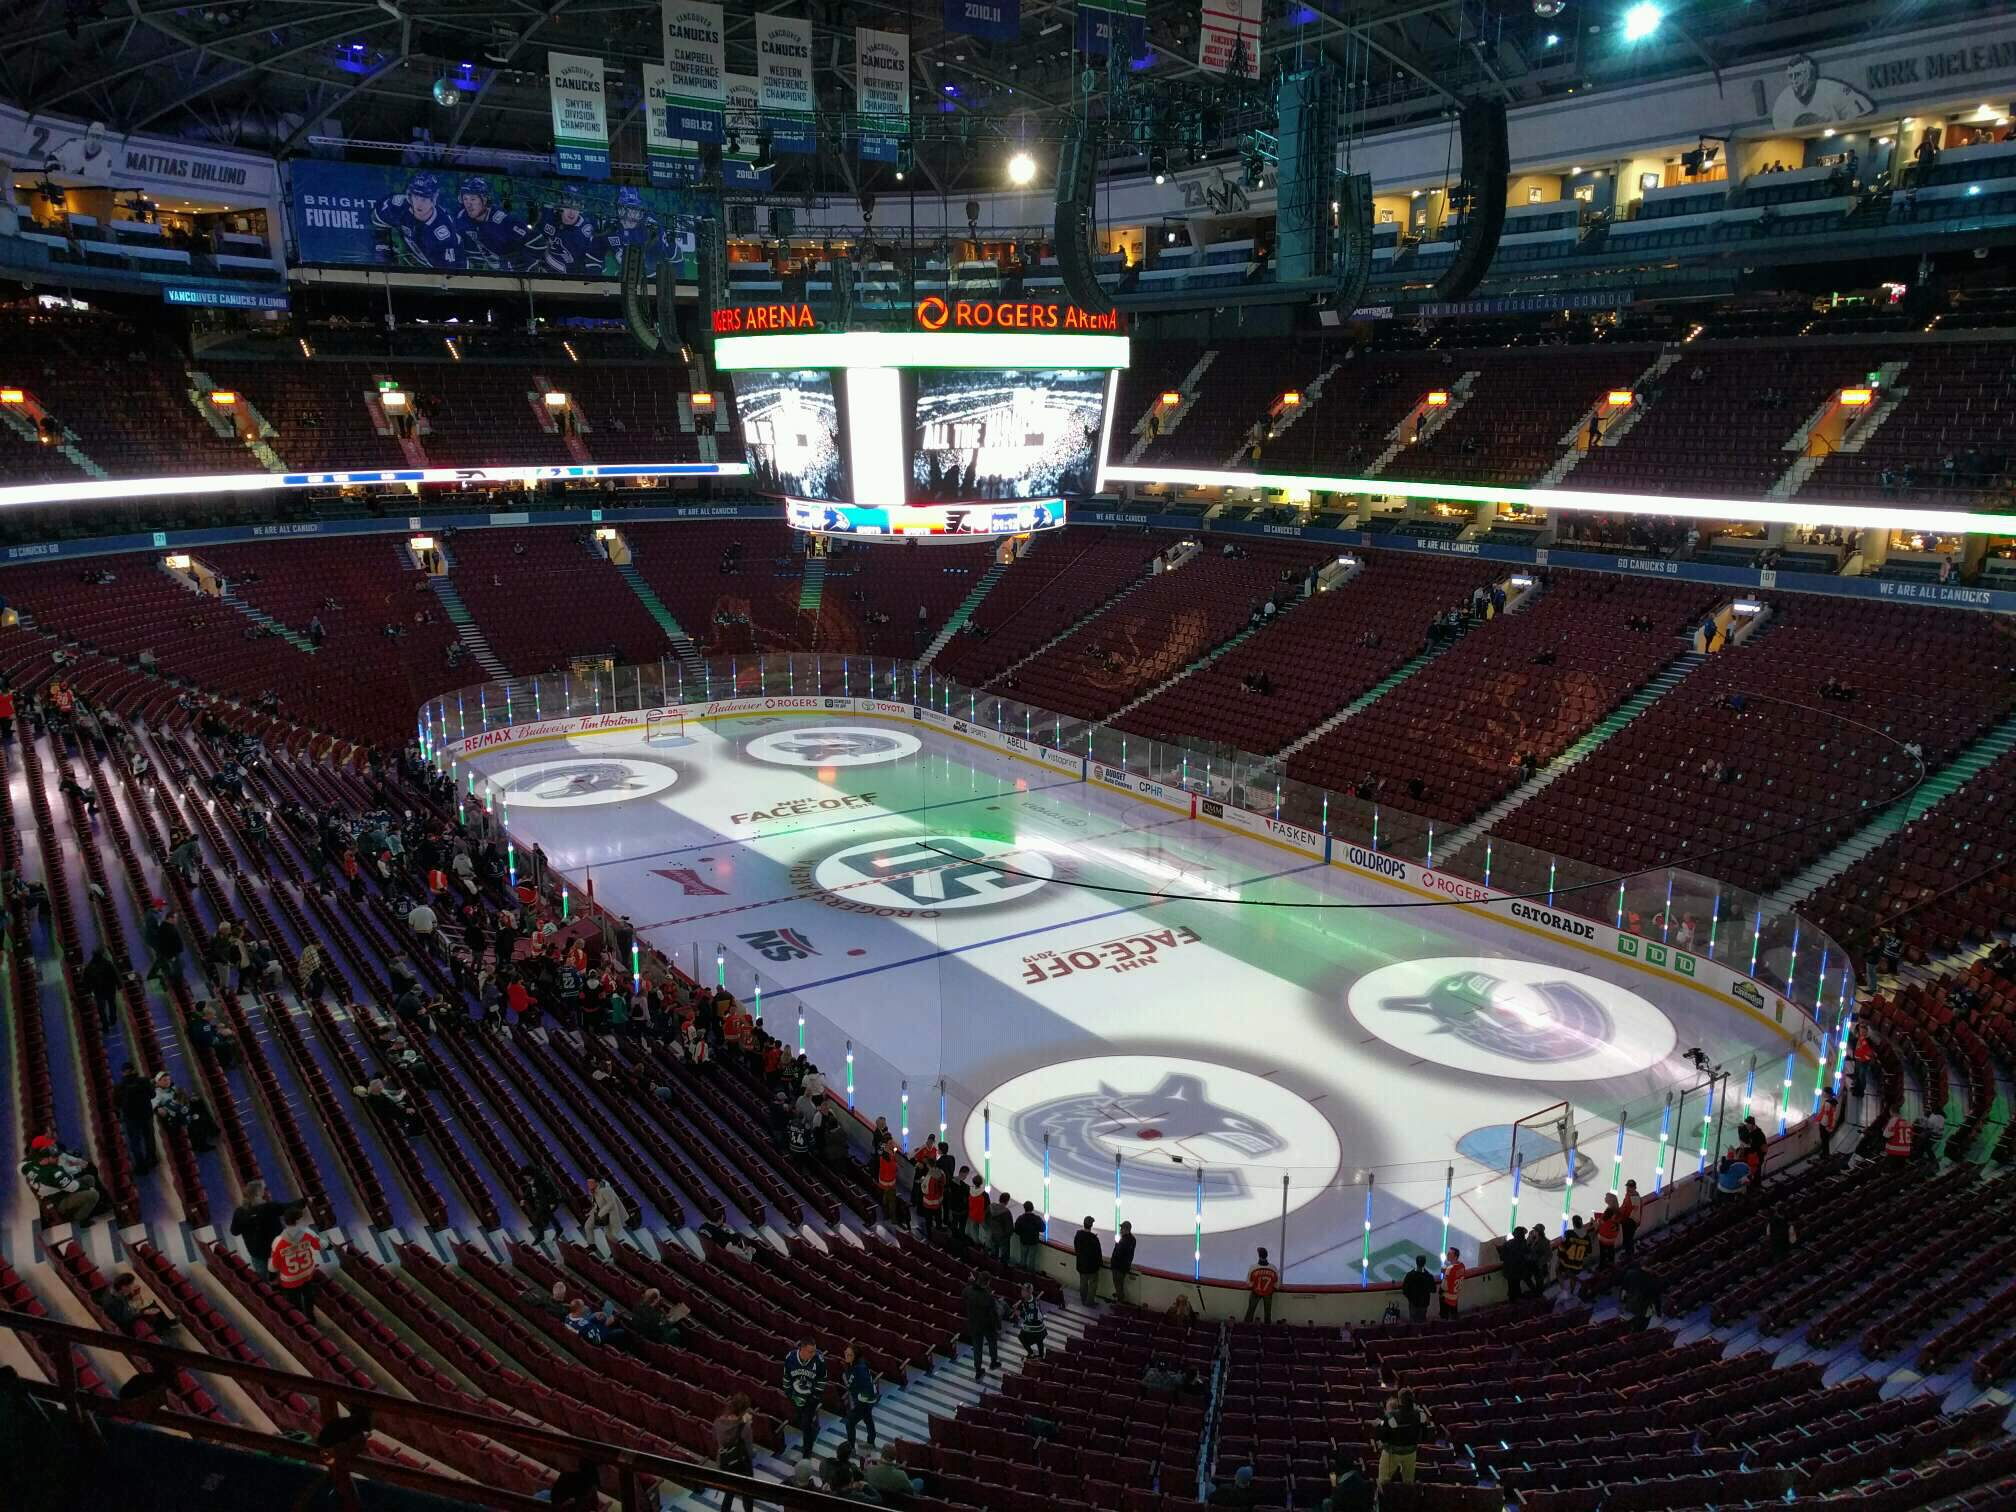 Rogers Arena Section 318 Row 7 Seat 106